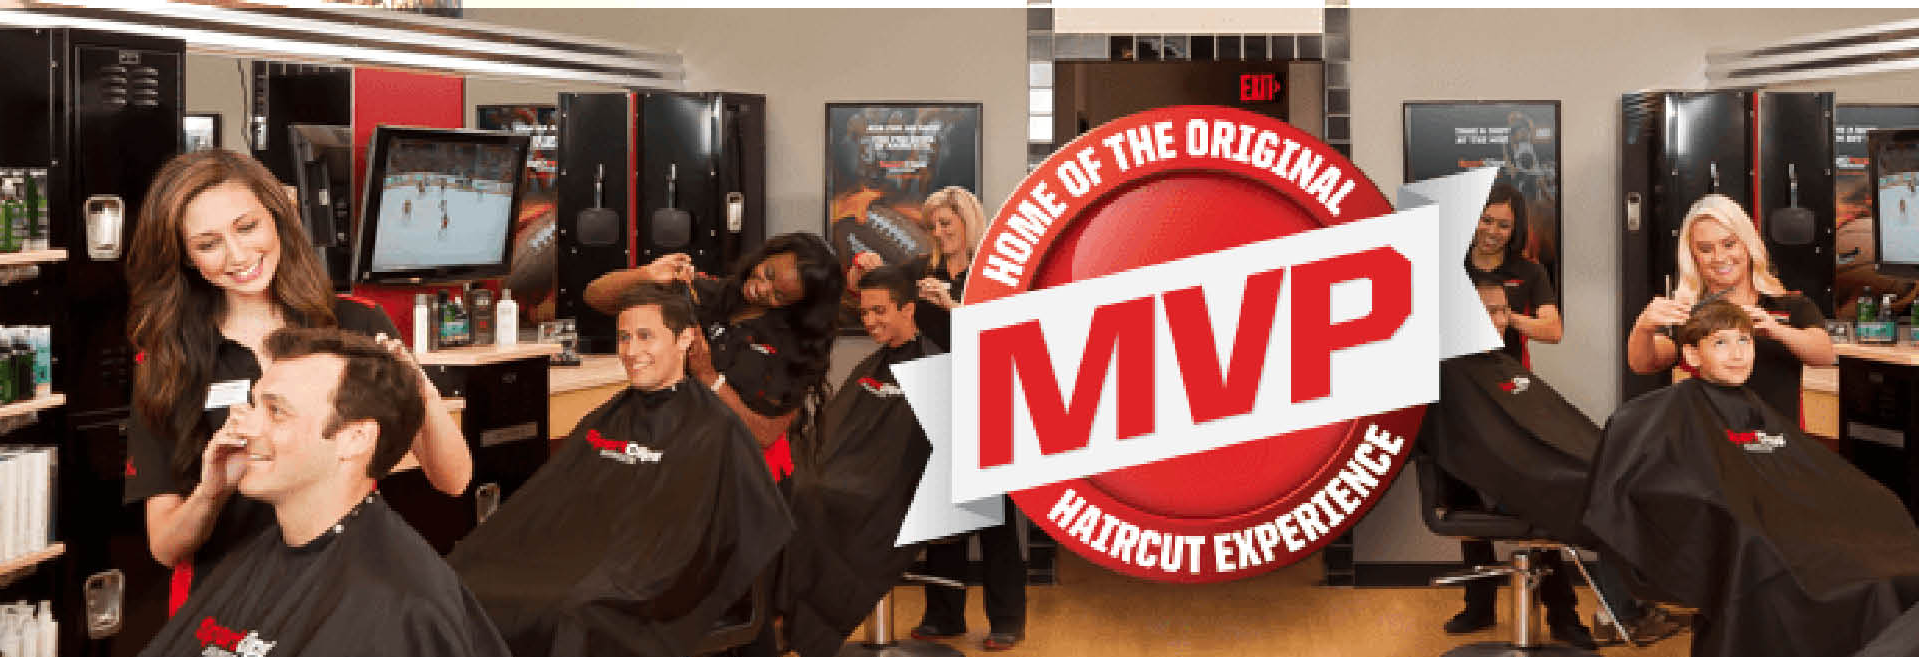 mvp haircuts coupons - president pub cheese coupons